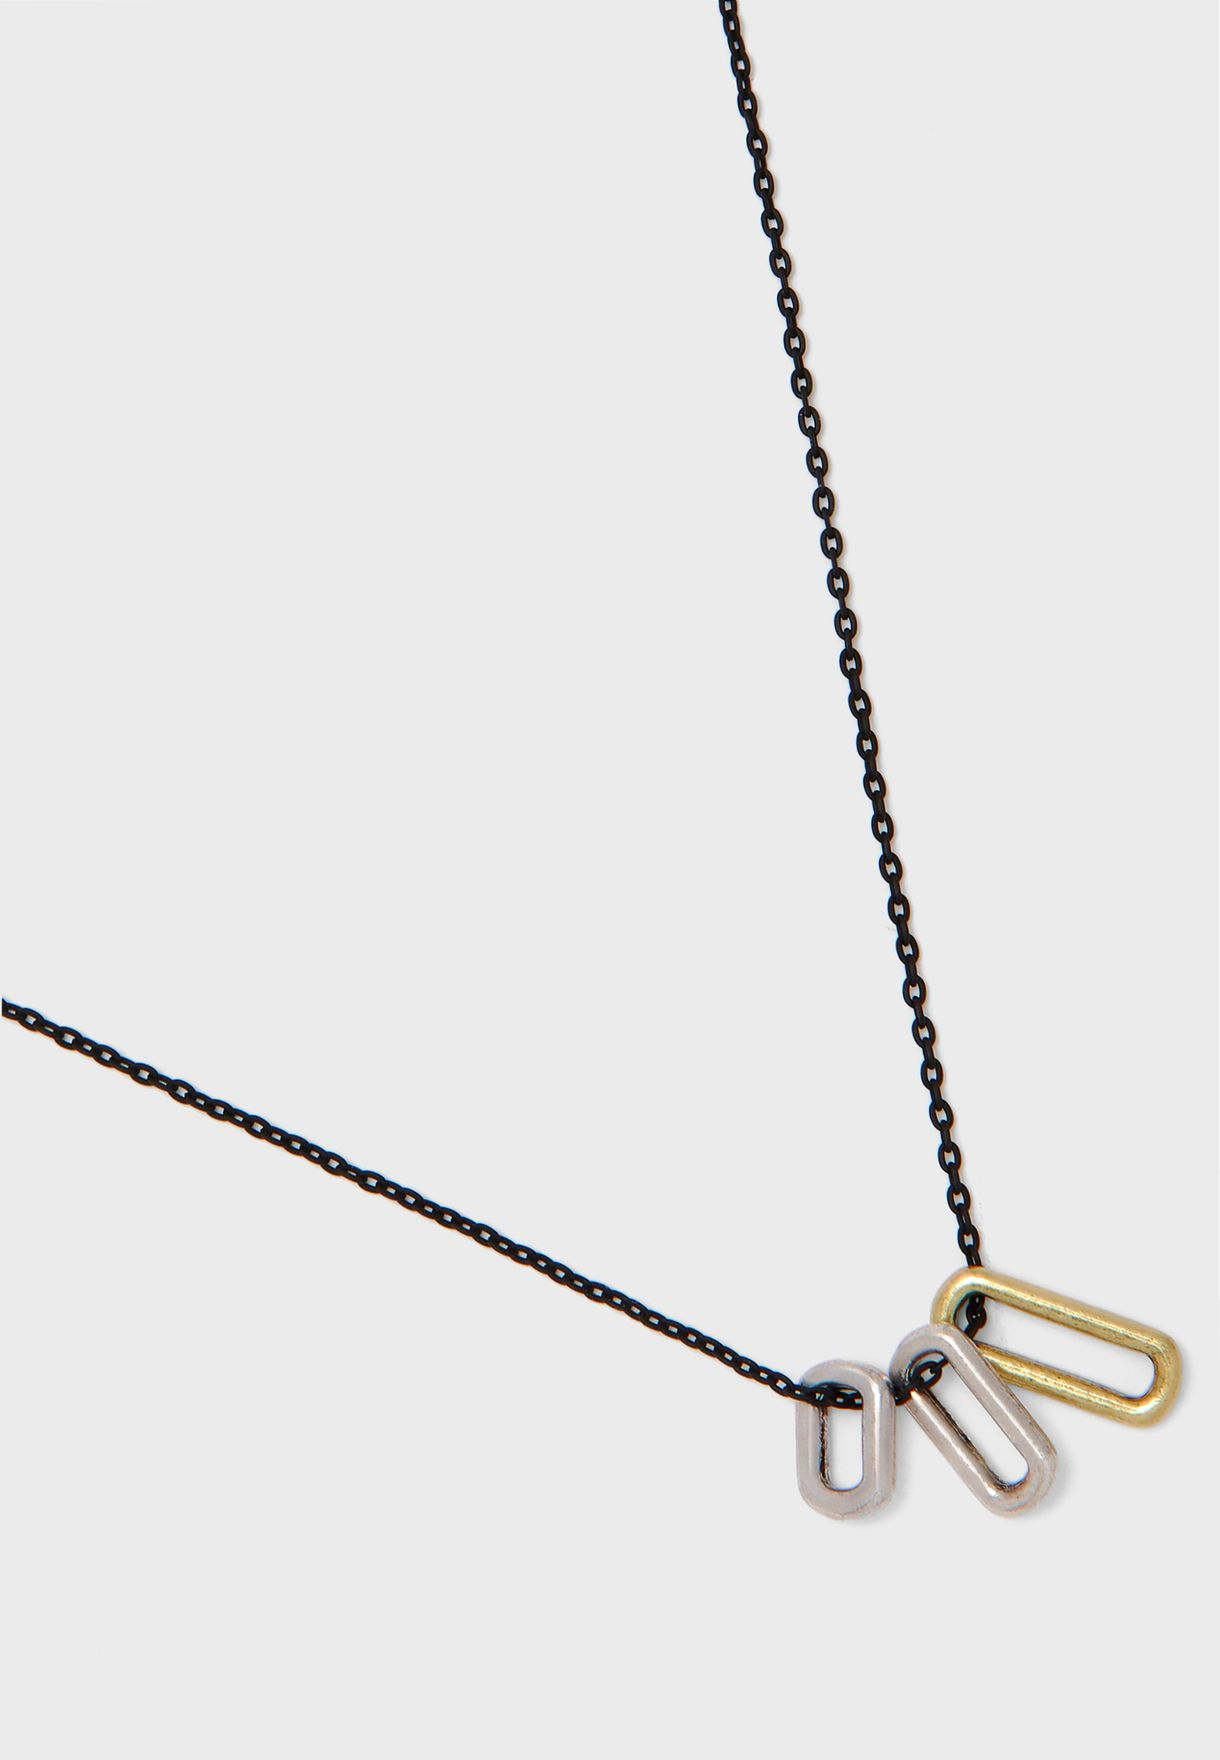 Lobster Clasp Closure Chain Necklace